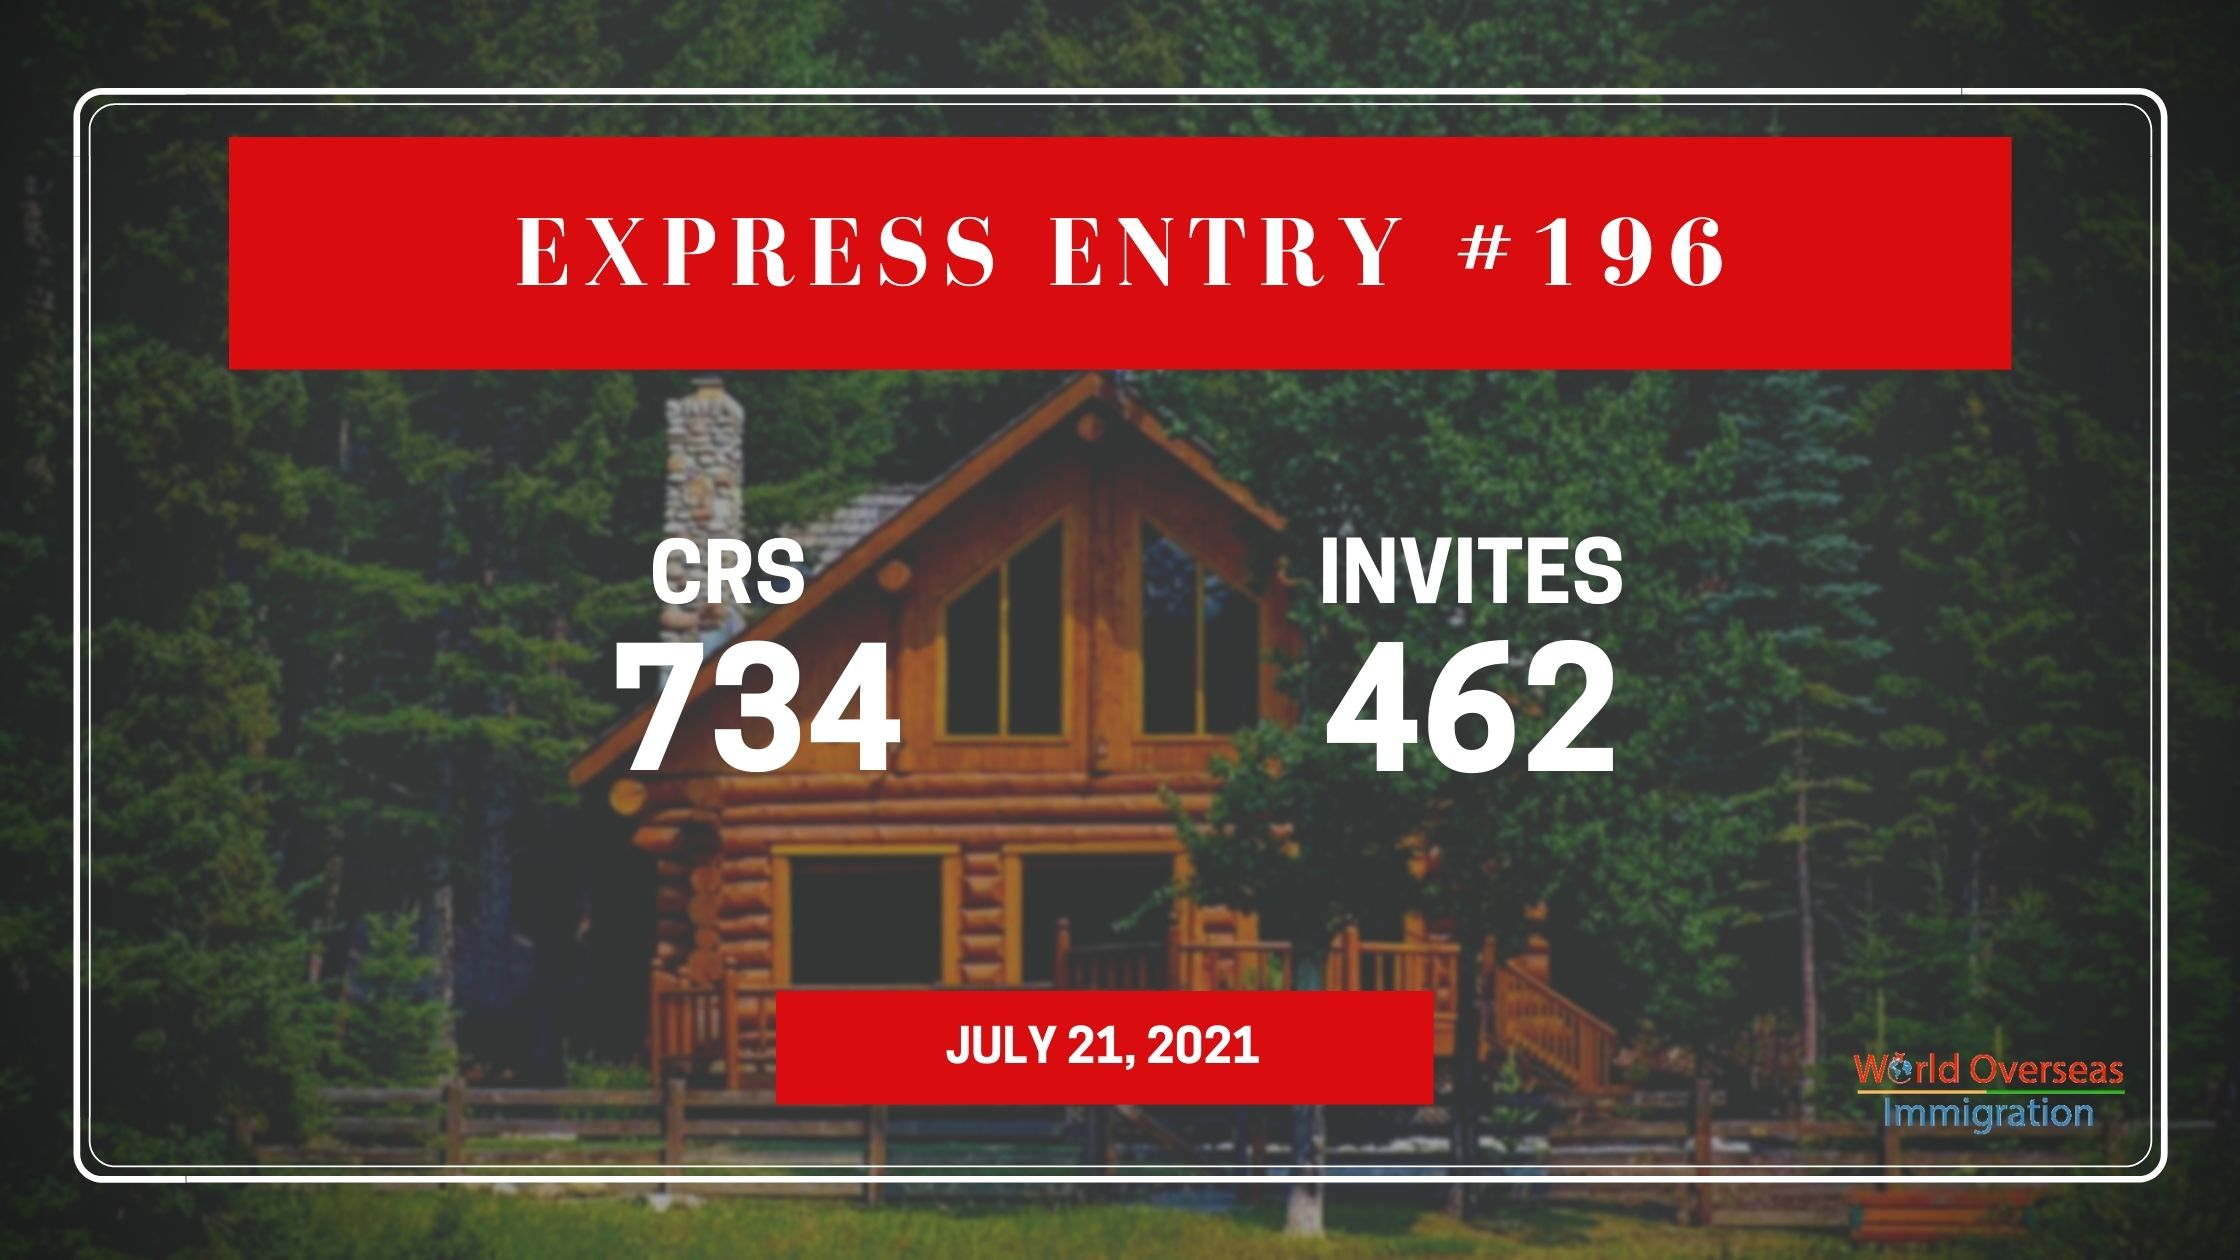 Express Entry #196: 462 PNP candidates are invited in new draw